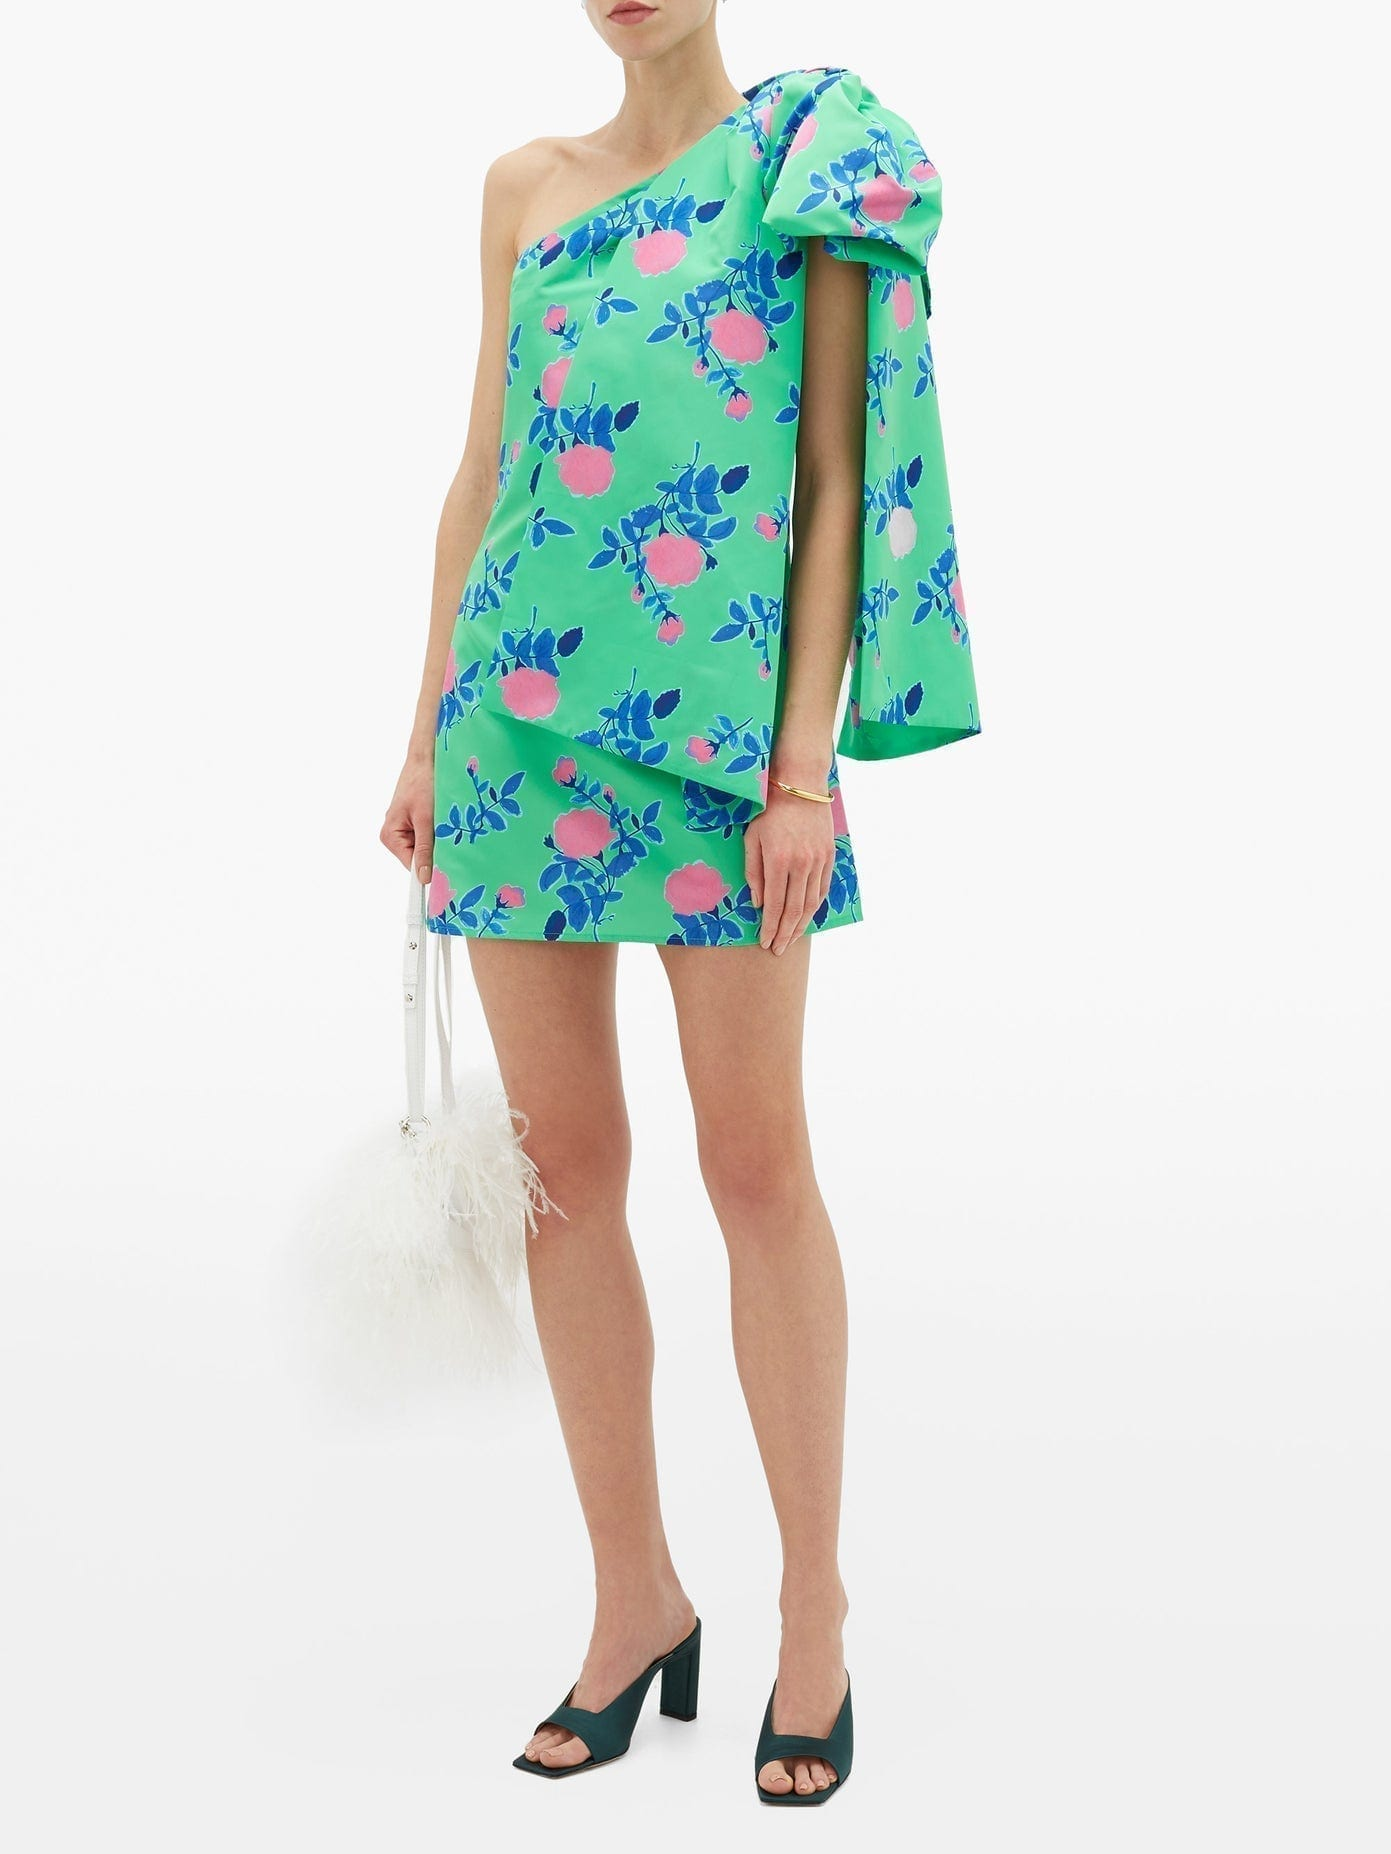 BERNADETTE Josselin Floral-Print Bow-Shoulder Dress